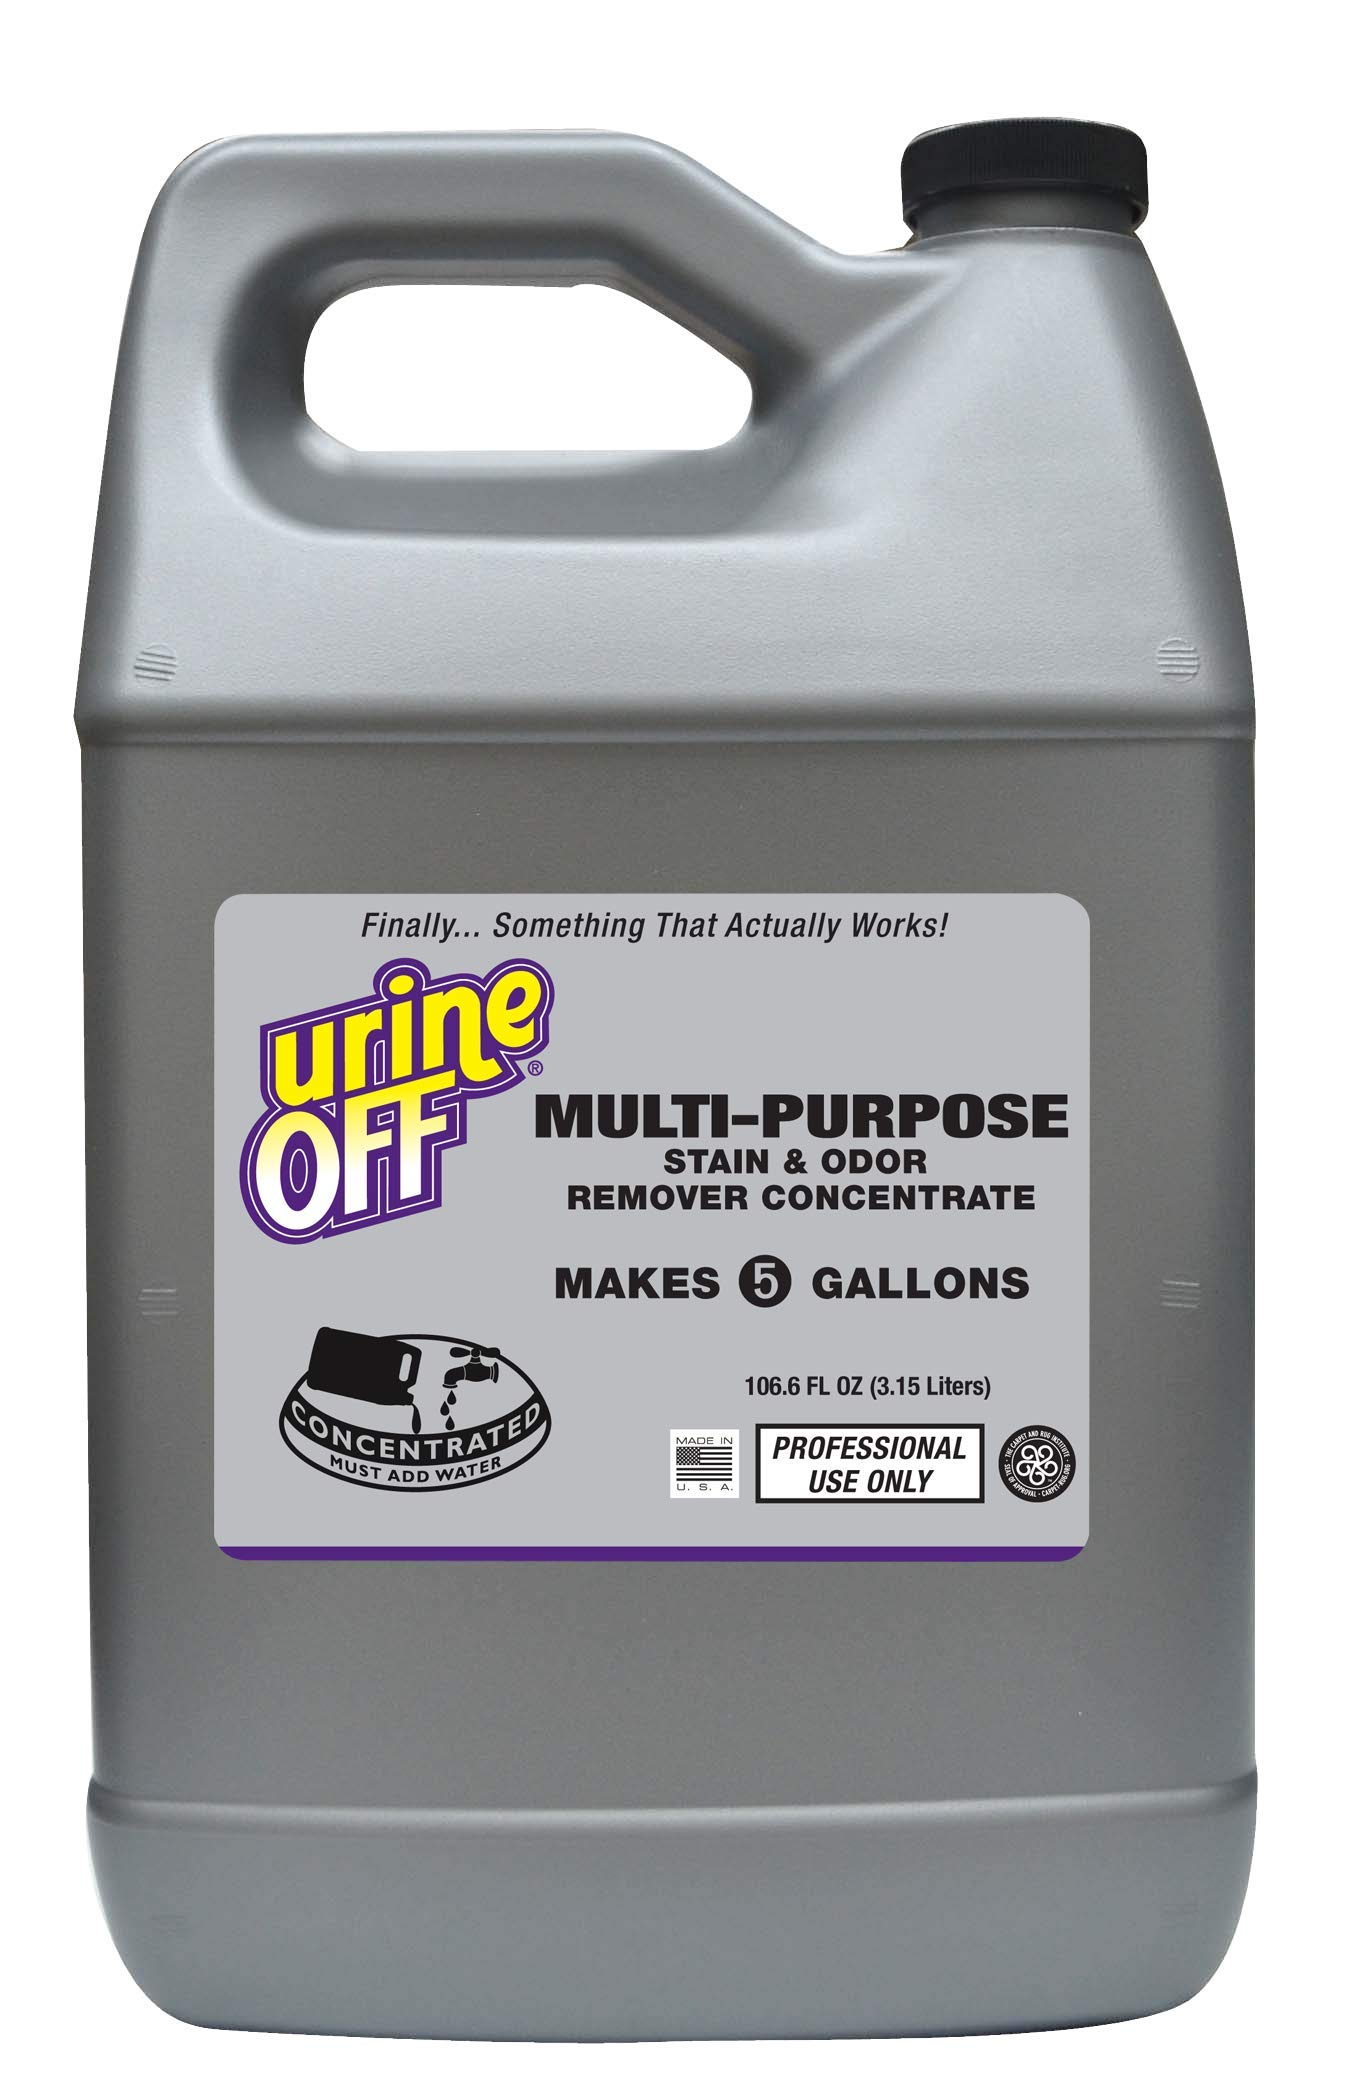 UrineOff Multi-Purpose Cleaner 1 Gallon Refill Concentrate Makes 5 Gallons by urineOFF